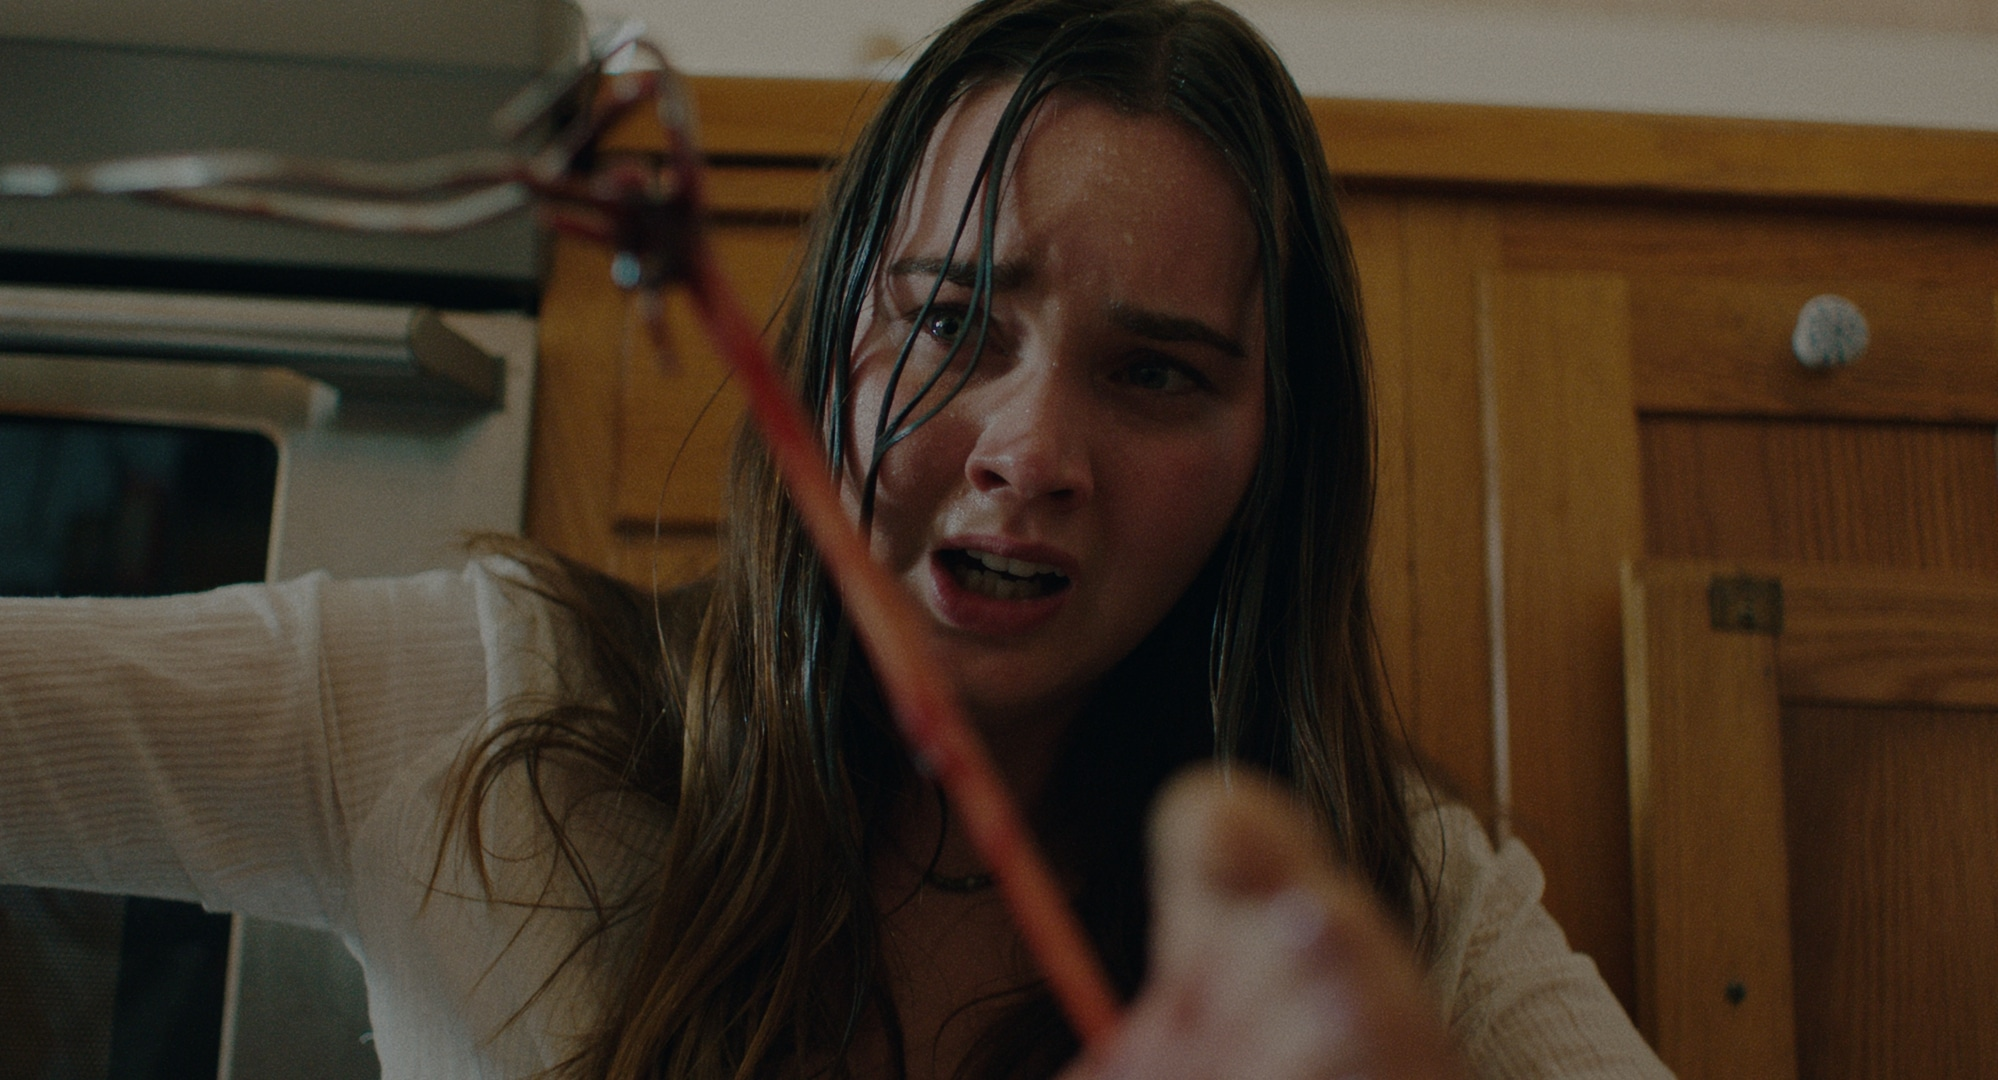 [Exclusive Interview] Writer And Director Jeffrey A. Brown's Worst-Case Scenario Conversation With Viewers in THE BEACH HOUSE